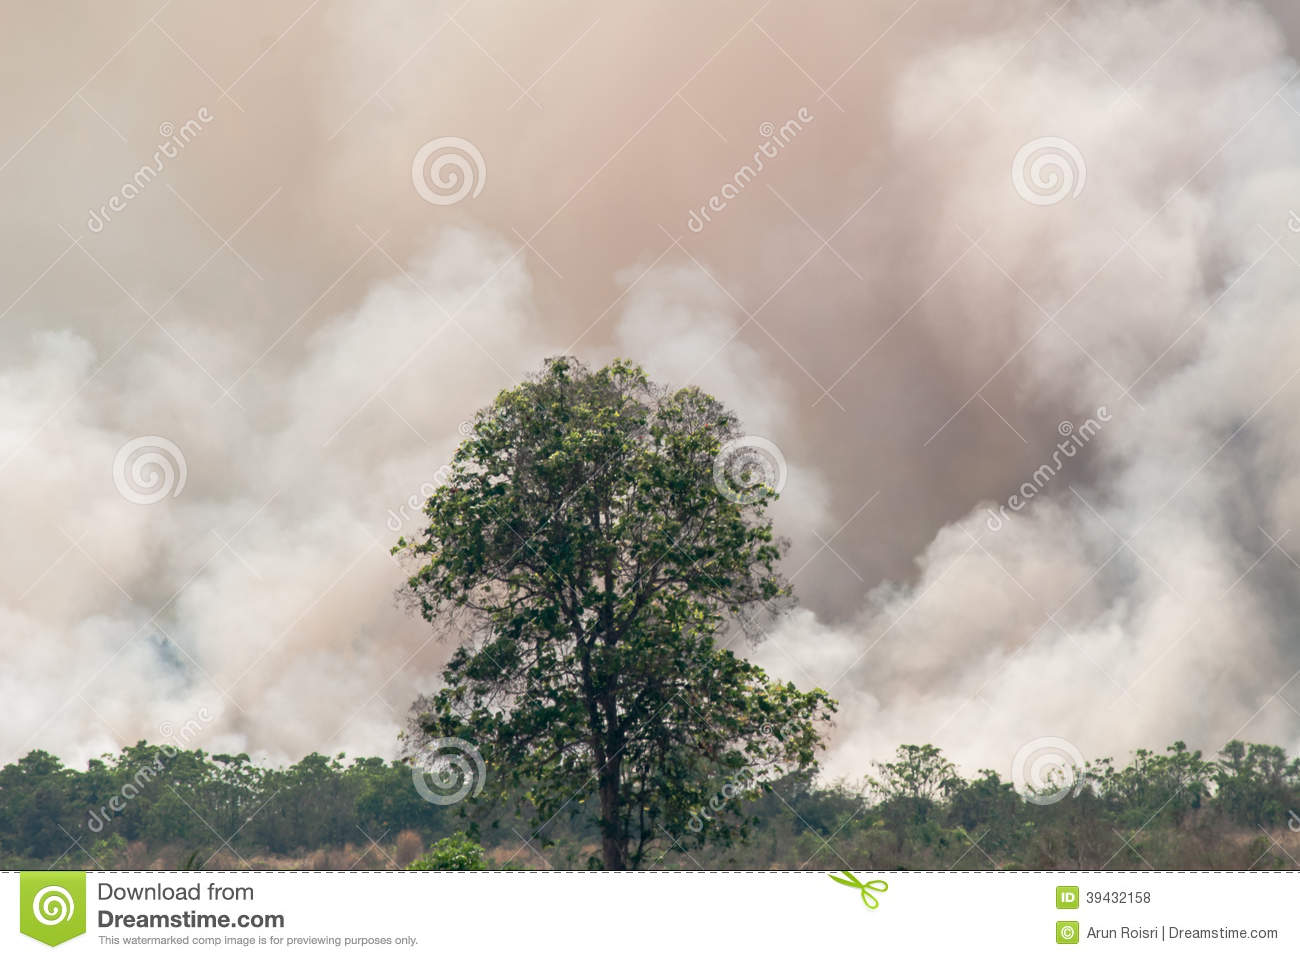 Wildfire - Burning forest ecosystem is destroyed